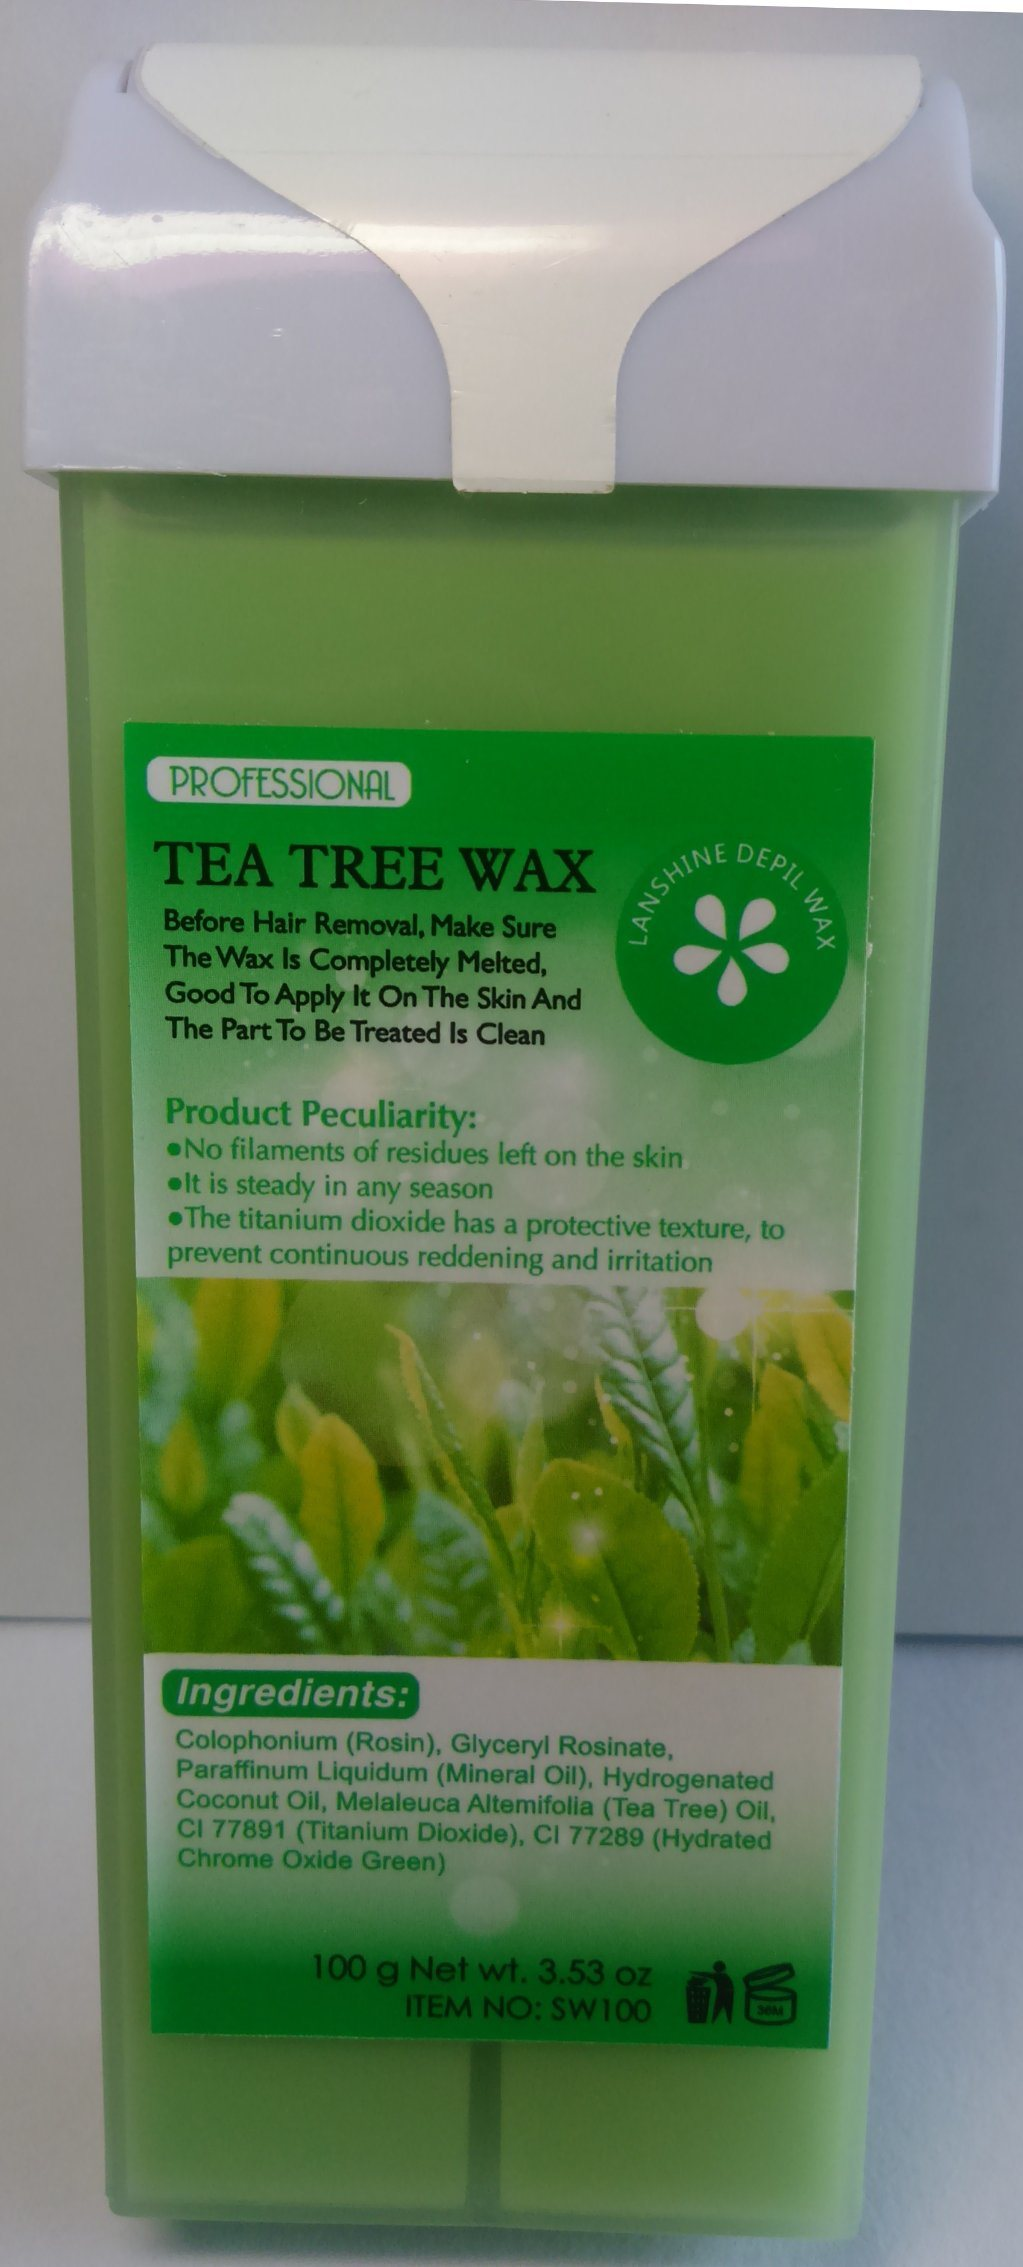 Roll-on Depilatory Wax Tea Tree Creme Wax